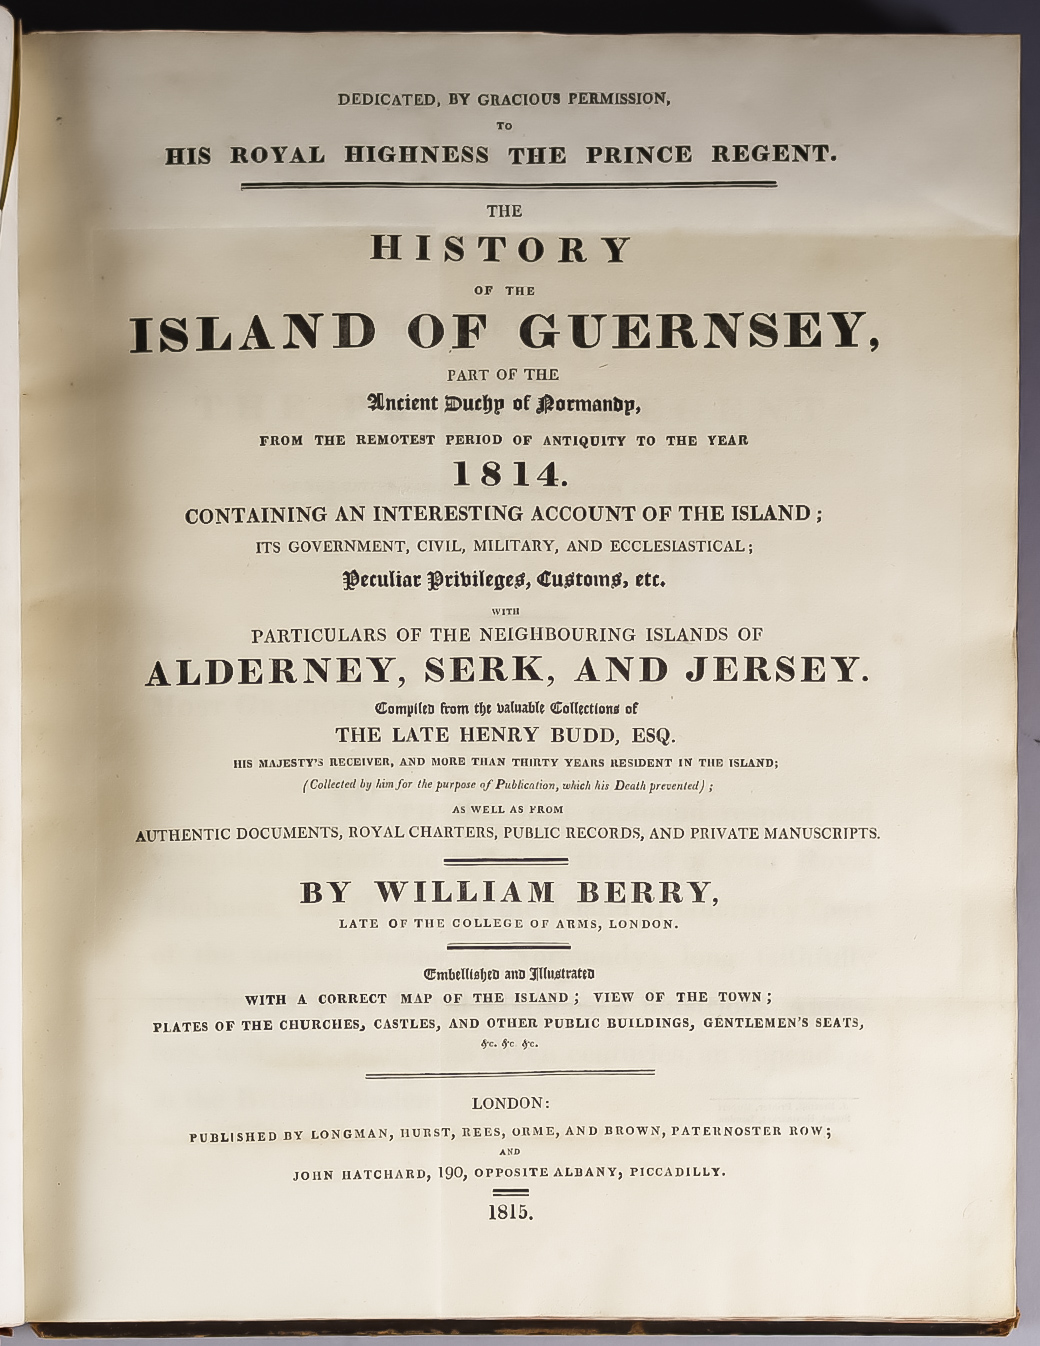 """William Berry - """"The History of the Island of Guernsey"""", published by Longman, Hirst, Rees, Orme &"""